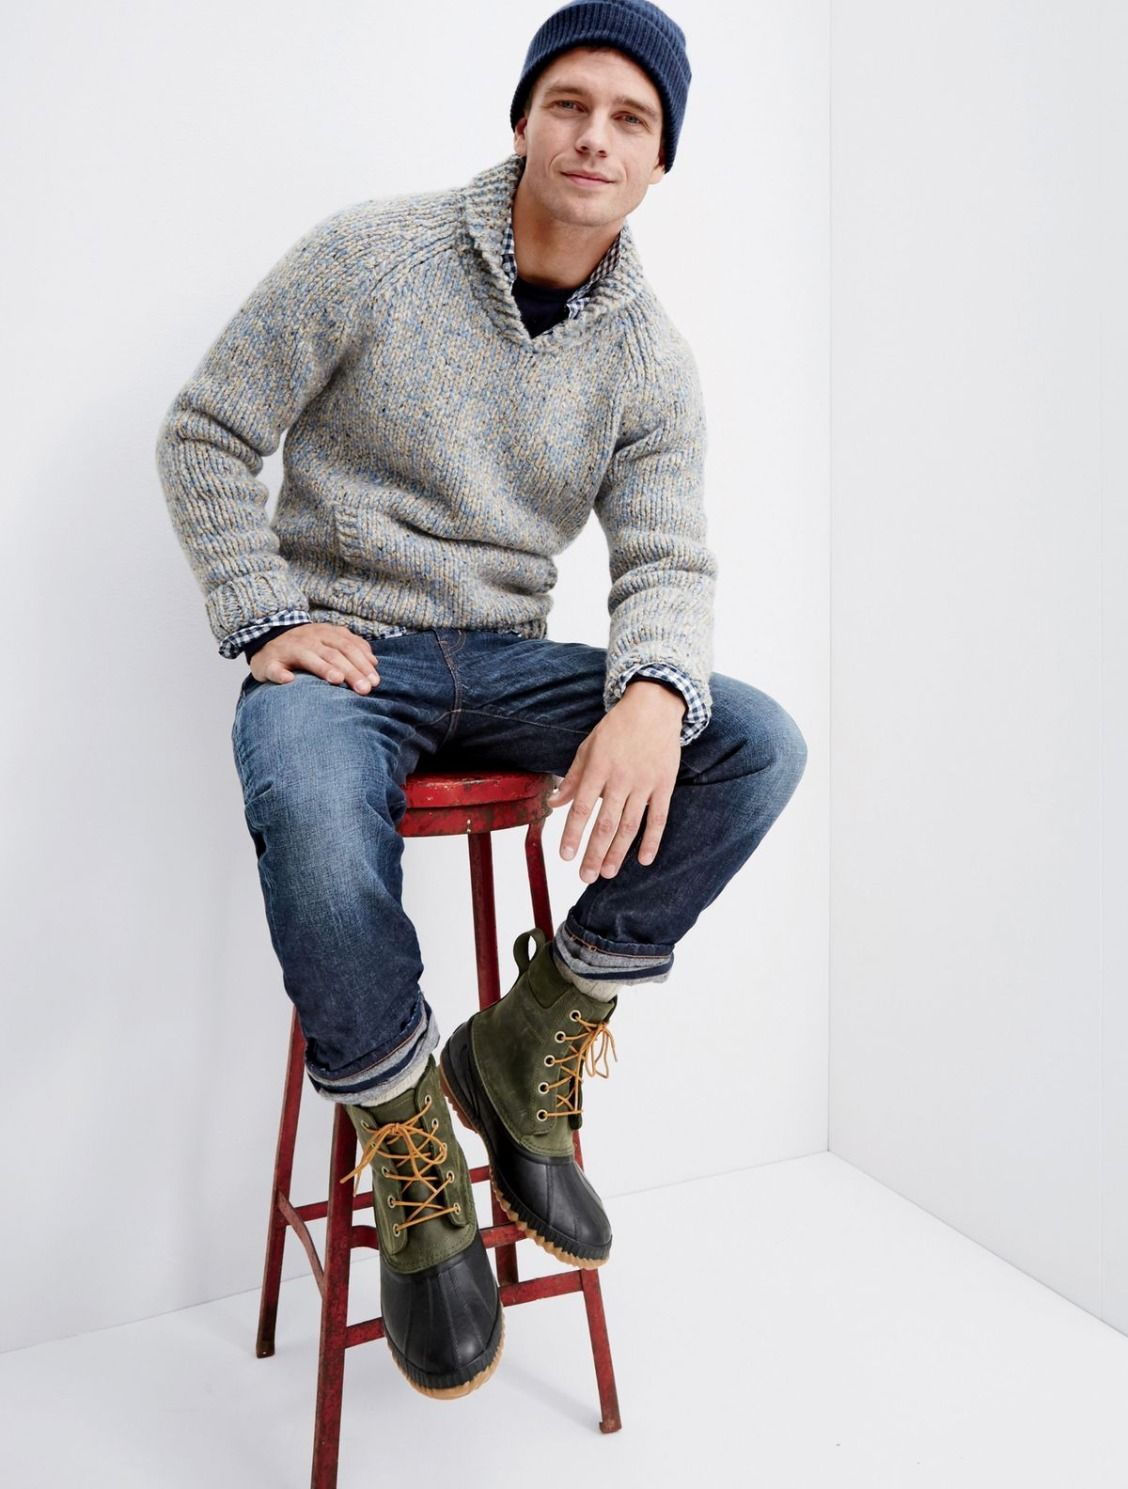 J.Crew men's shawl collar sweater, 770 denim cabin pants in Schaeffer wash and Sorel® for J.Crew Cheyanne boots.